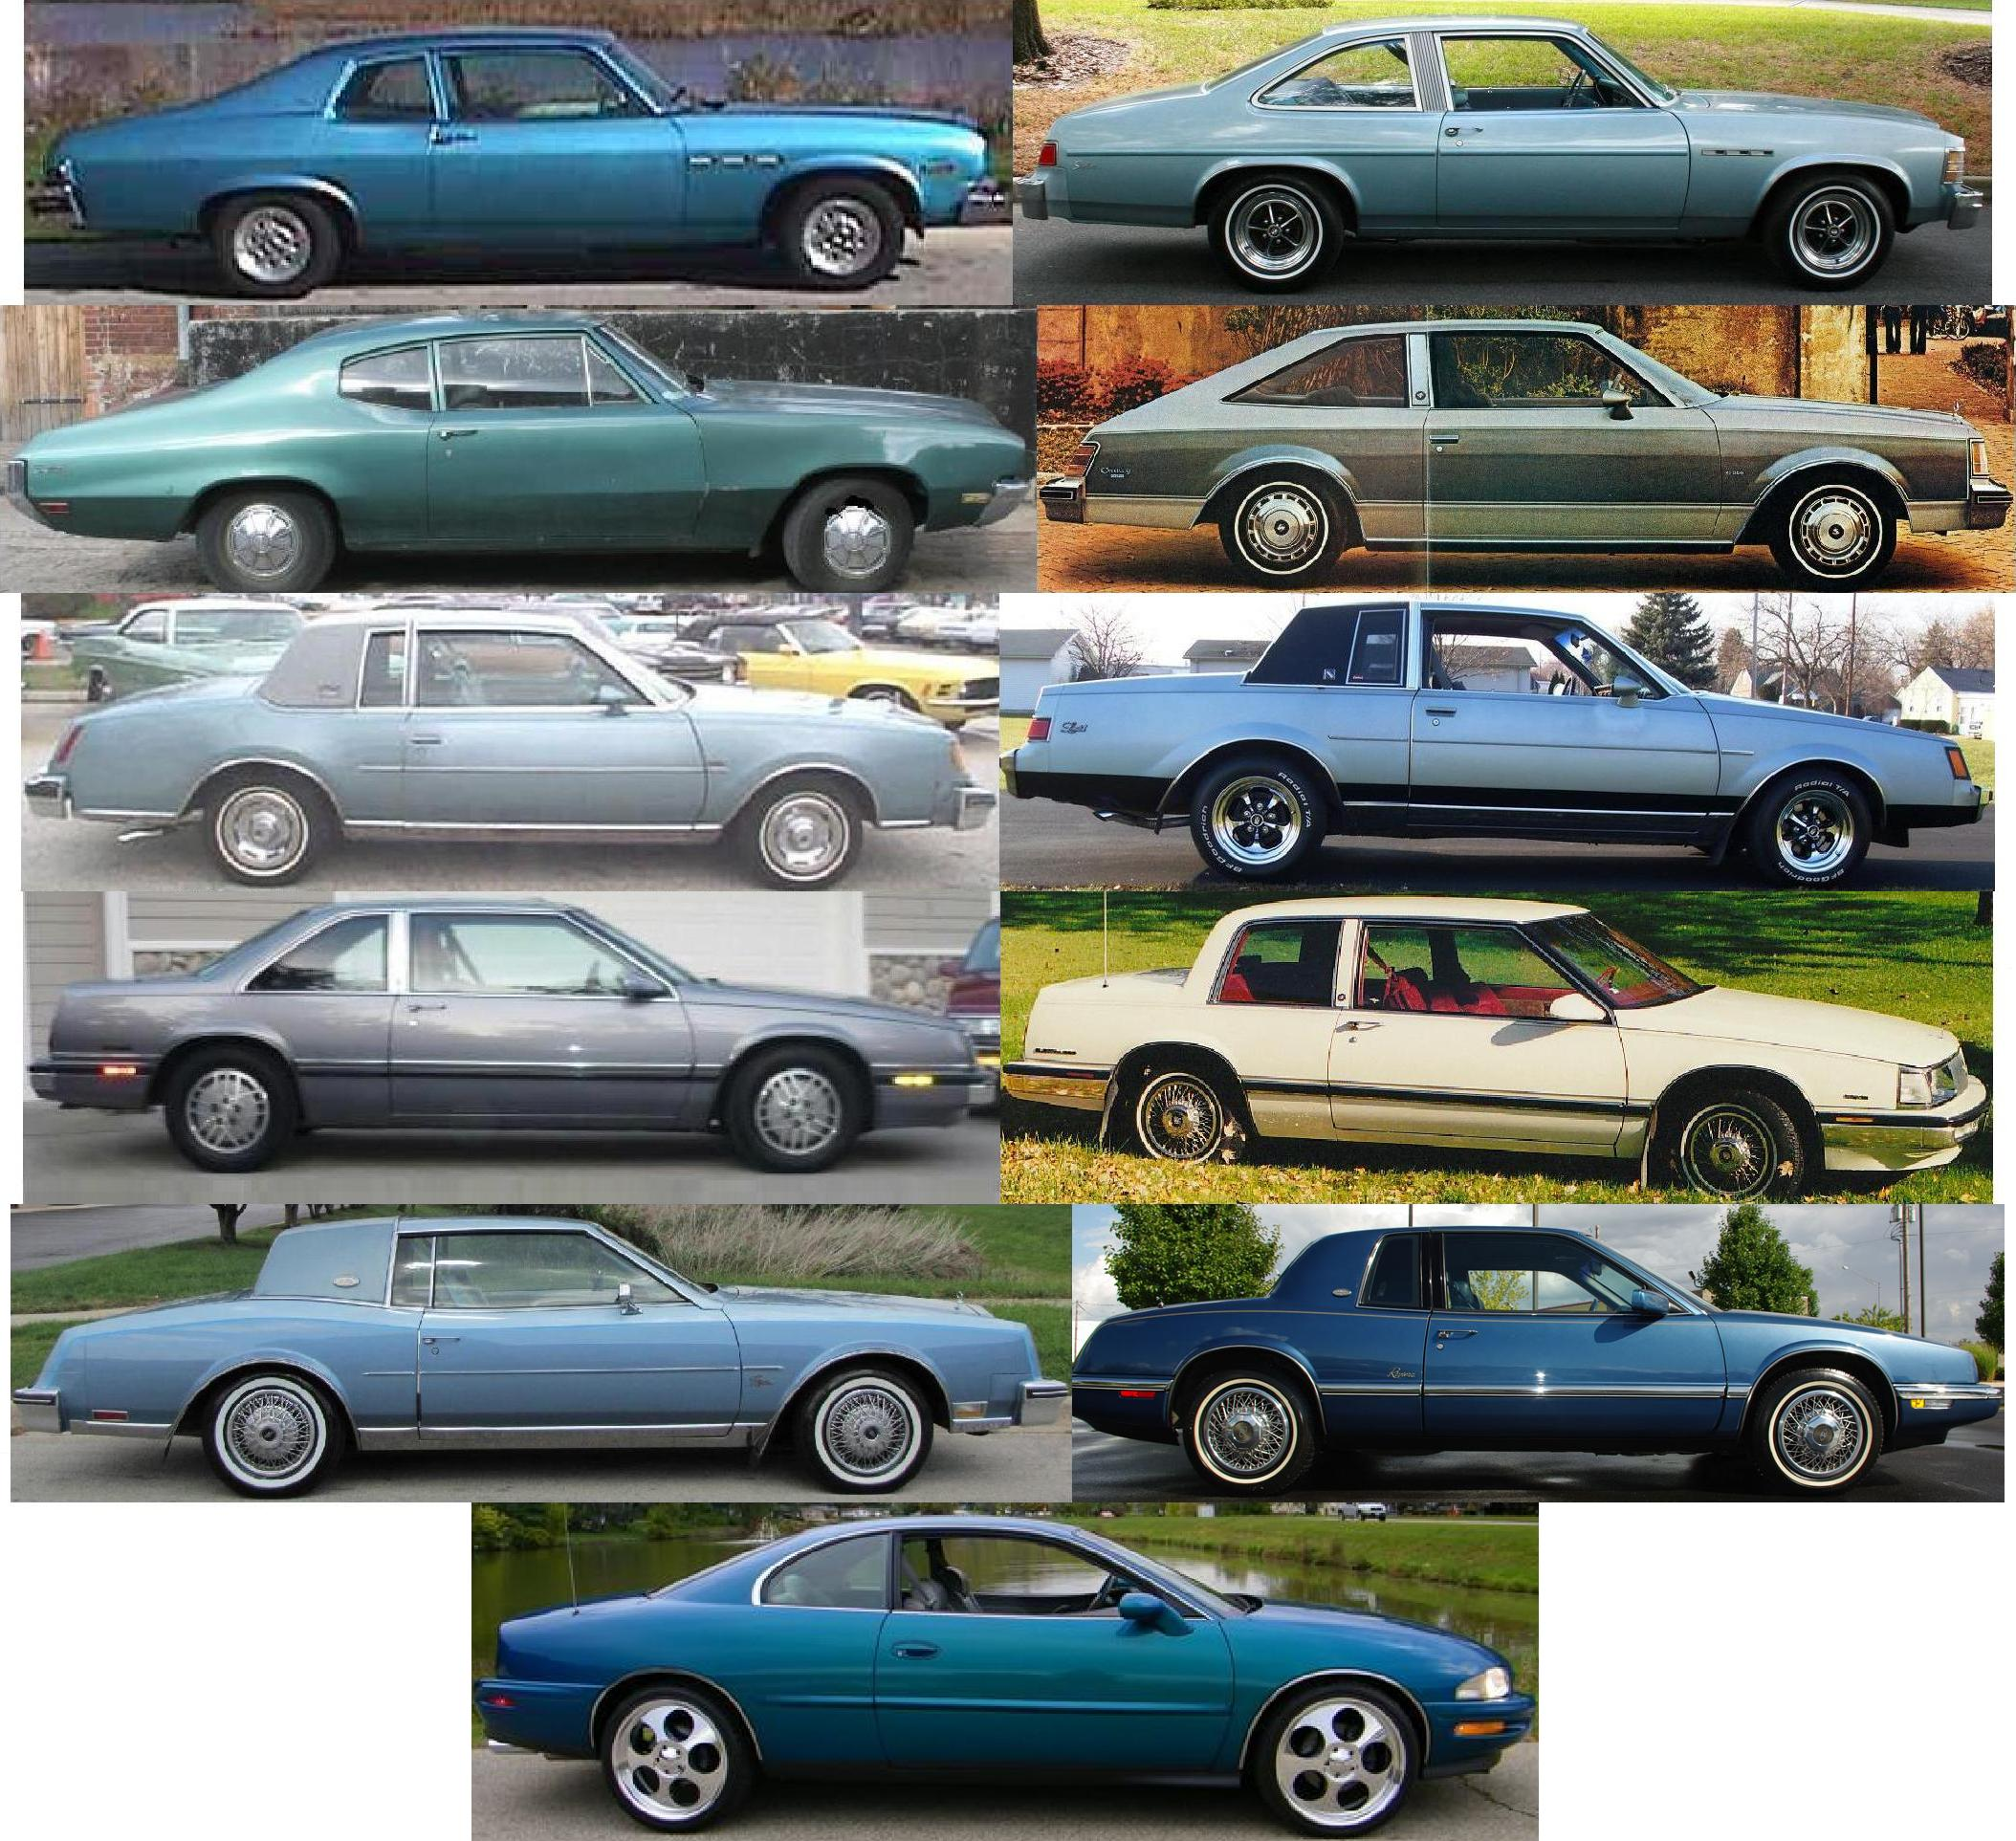 Buick Regal T Type For Sale: Reply